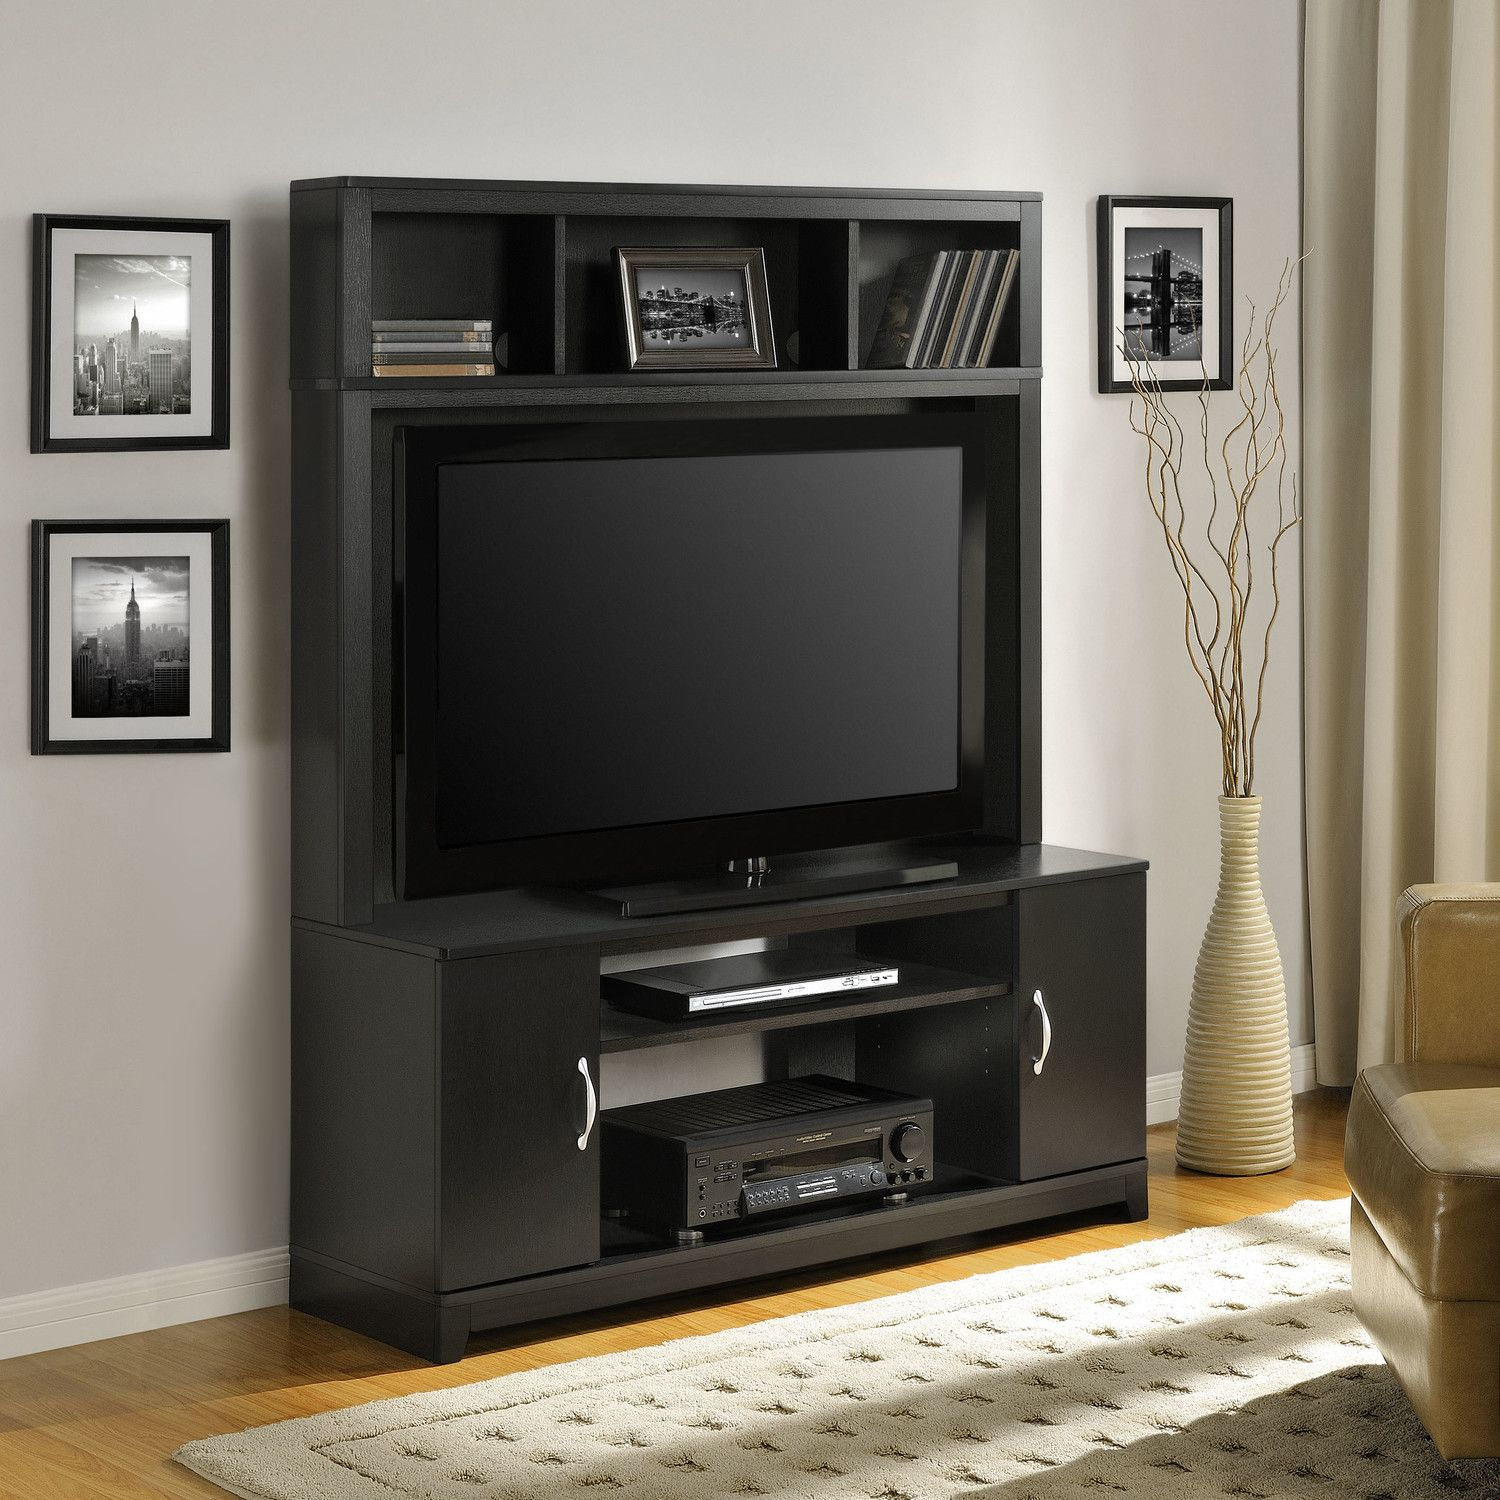 Cabinets Dvds Video And Gaming Accessories Lower Shelves Hold Av Components Consoles Upper Storage On Hutch Accommoda